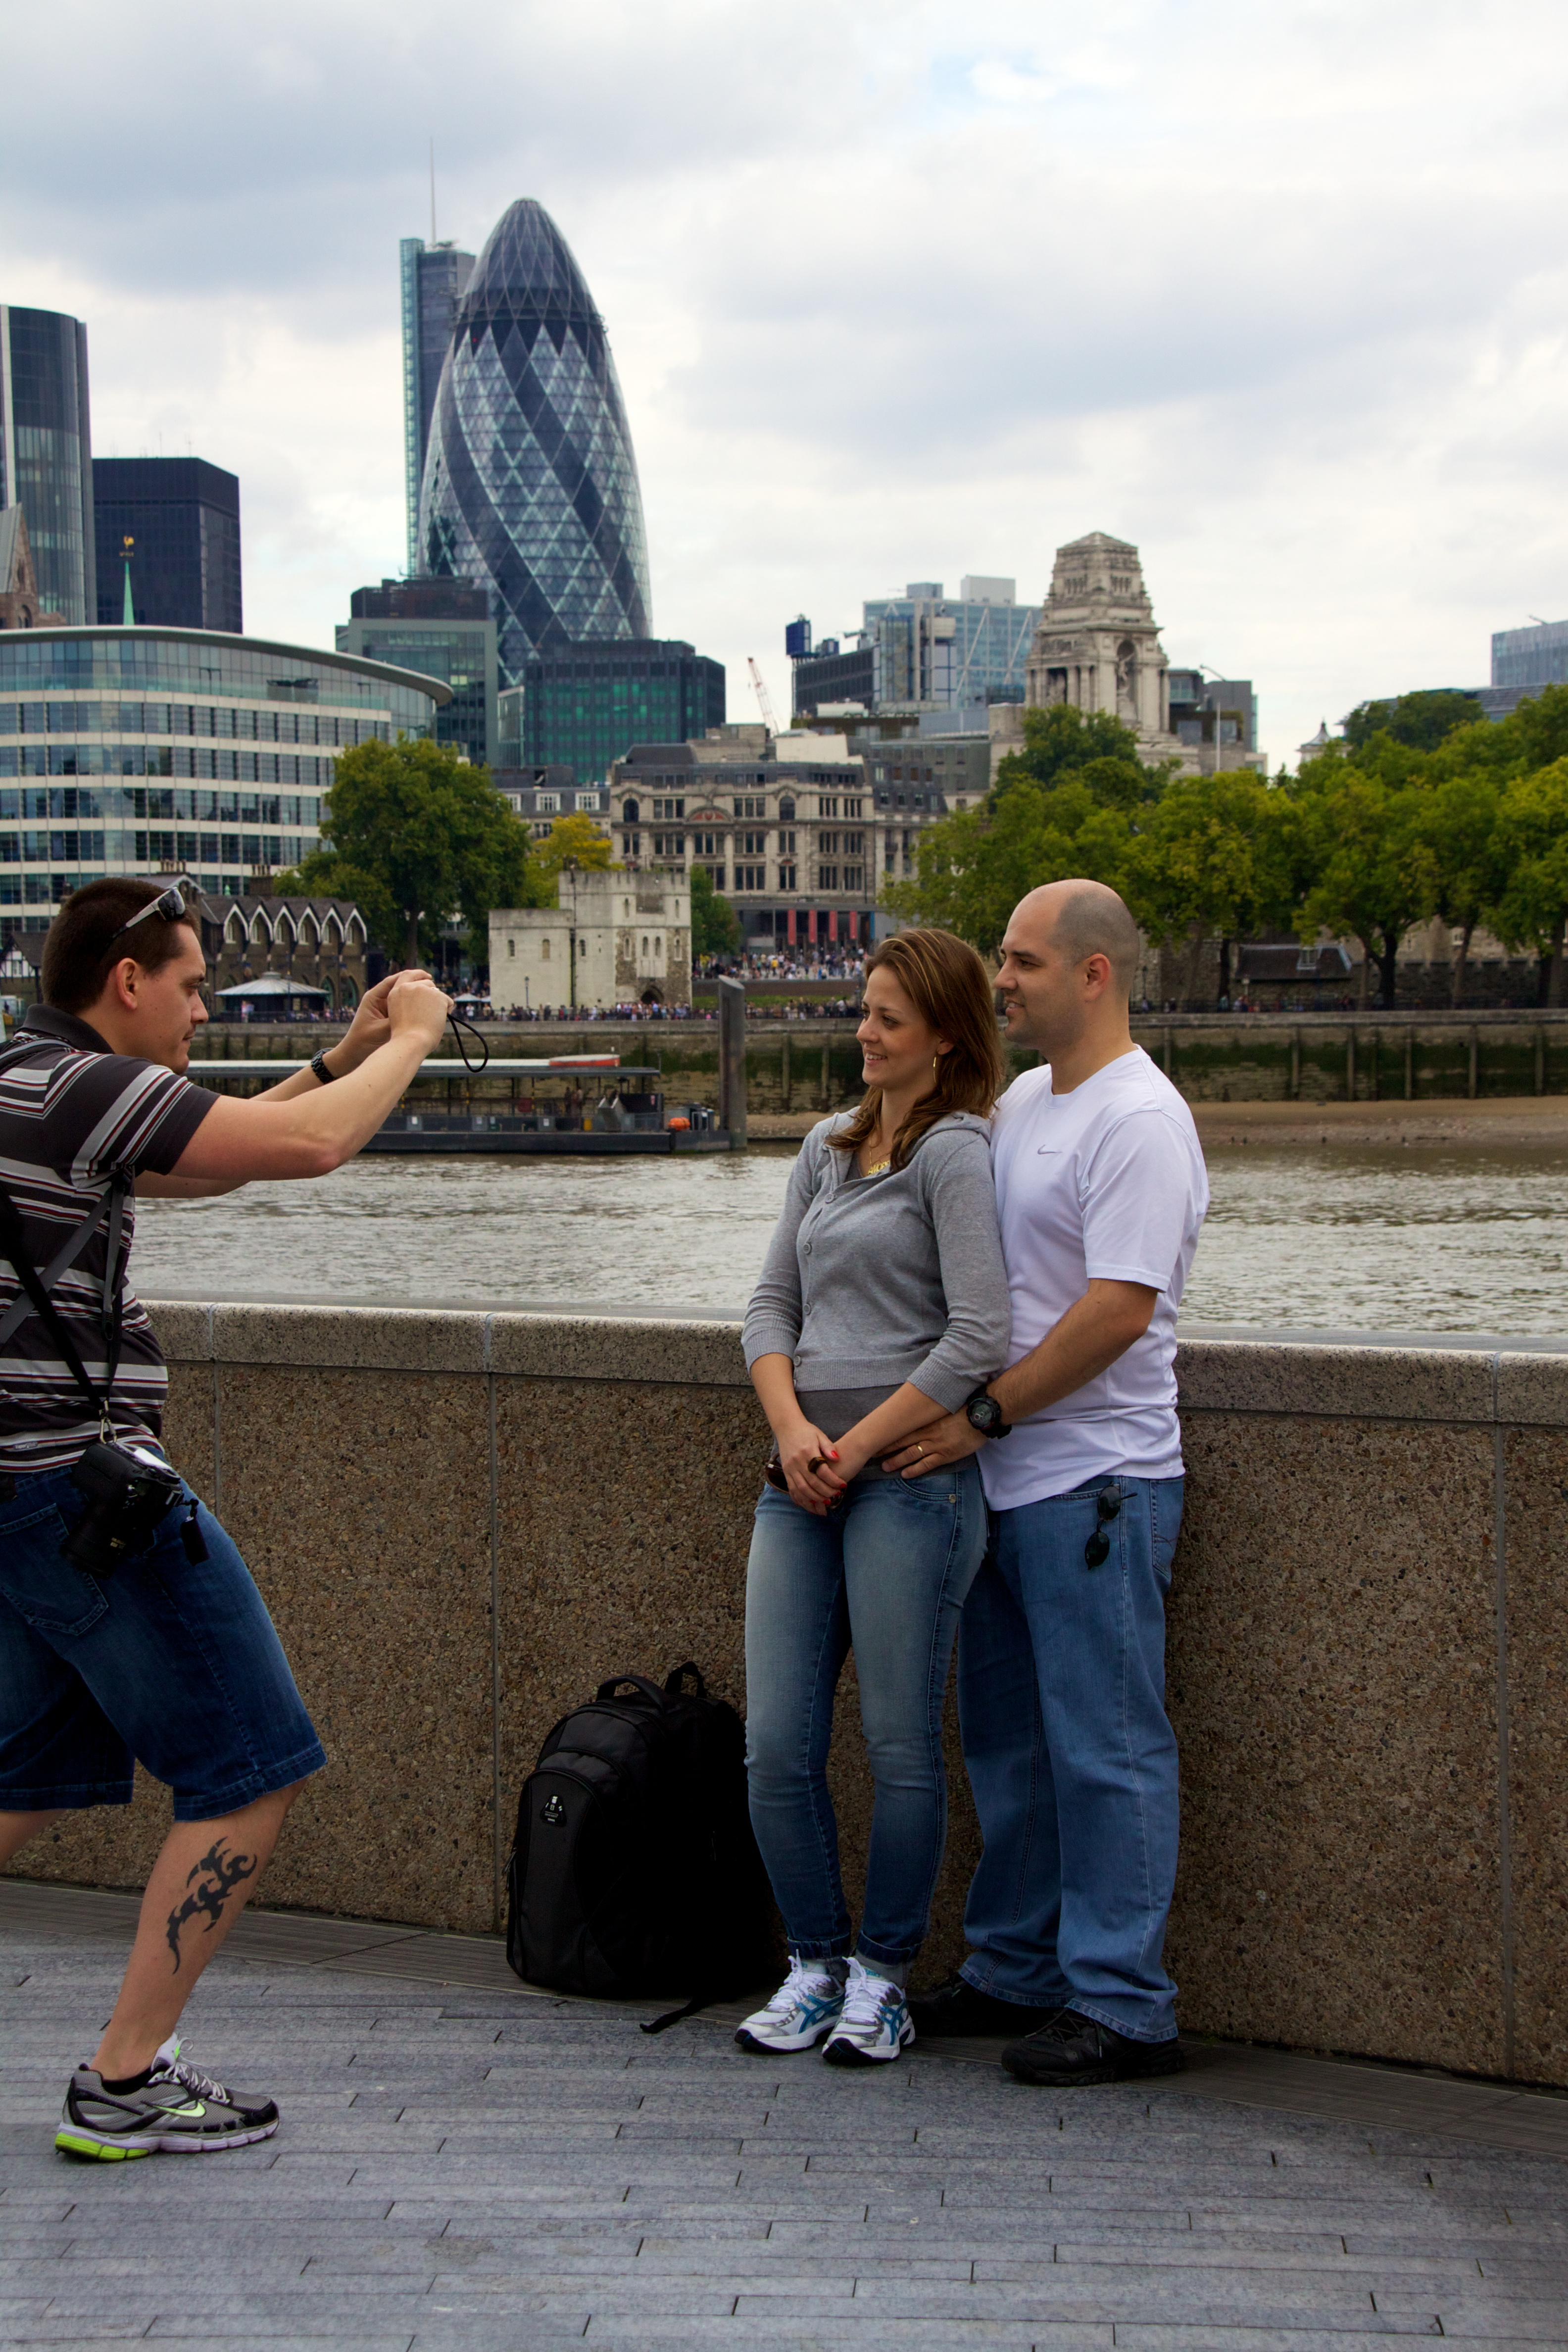 Man taking a photo of a couple on the South Bank in London with the Gherkin in the background